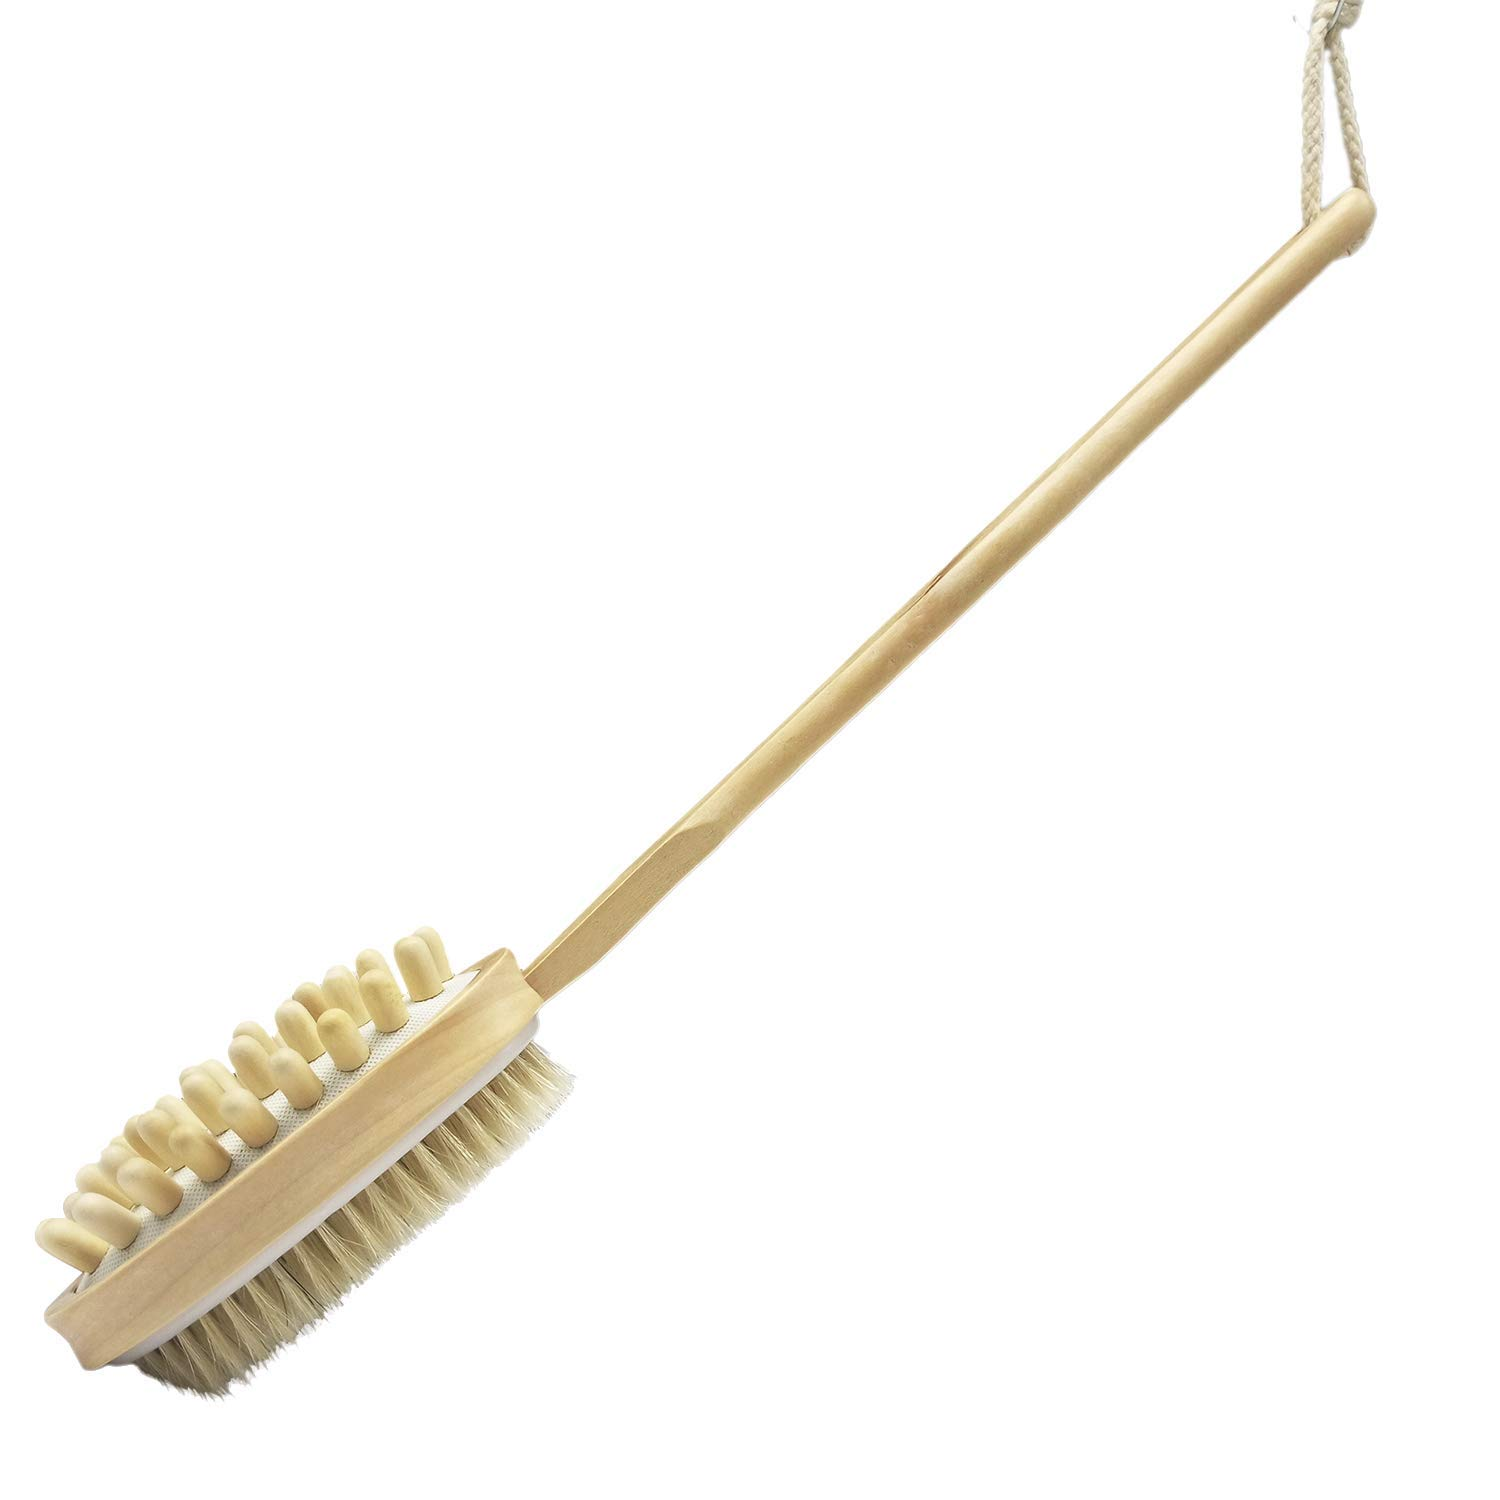 Bath Blossom Bamboo Body Brush for Back Scrubber - Natural Bristles Shower Brush with Long Handle - Excellent for Exfoliating Skin and Cellulite - Use Wet or Dry - Suitable for Men and Women Pomarico